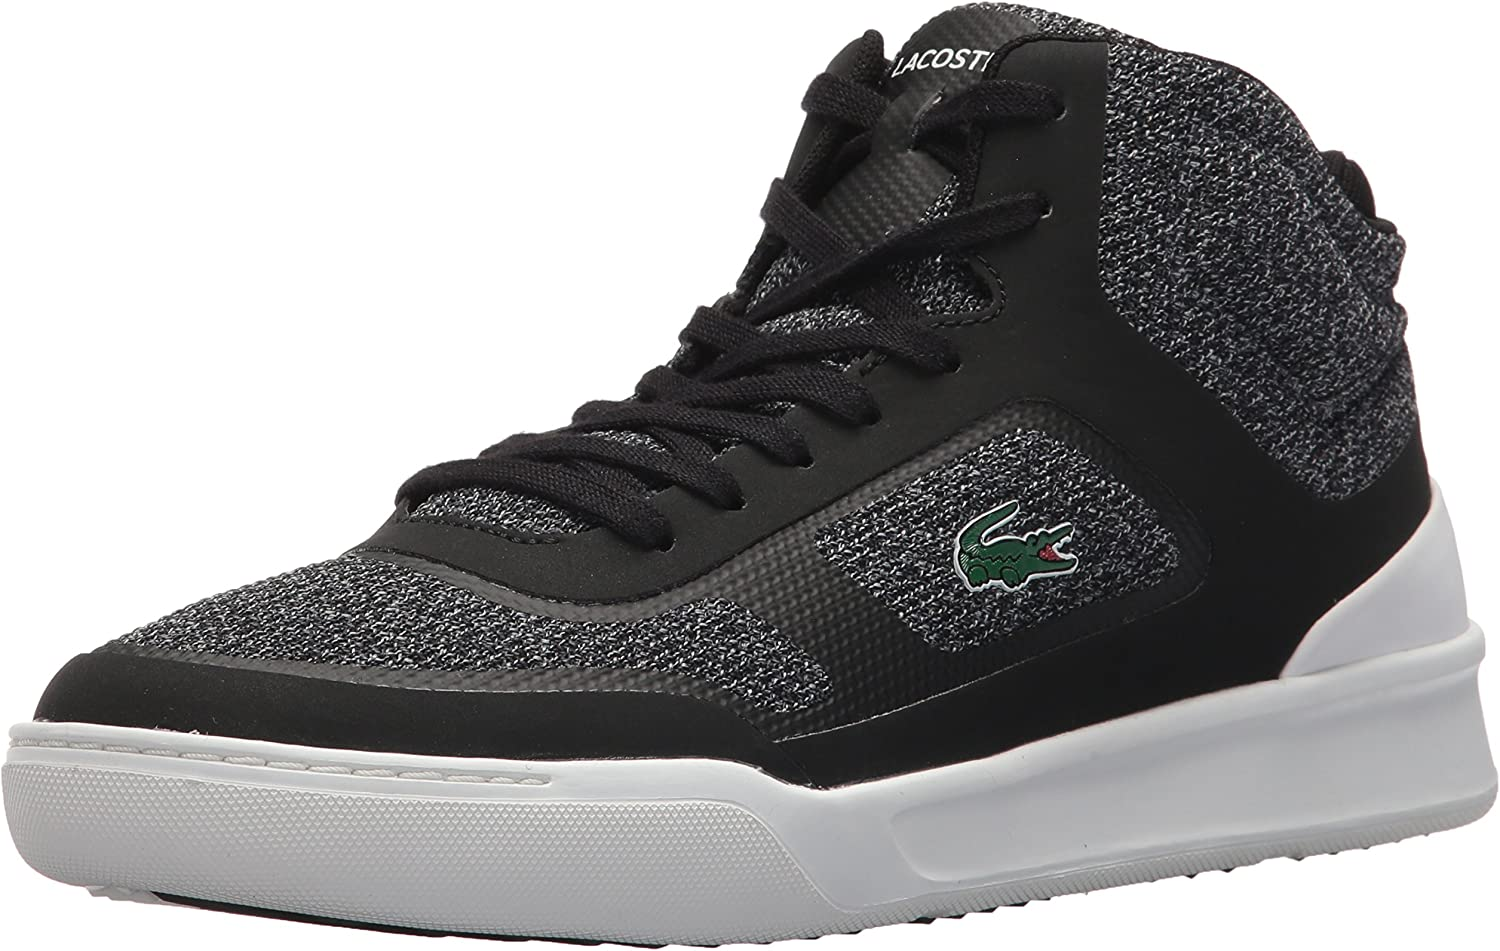 Lacoste Men's Explorateur SPT MID 317 2 Sneaker